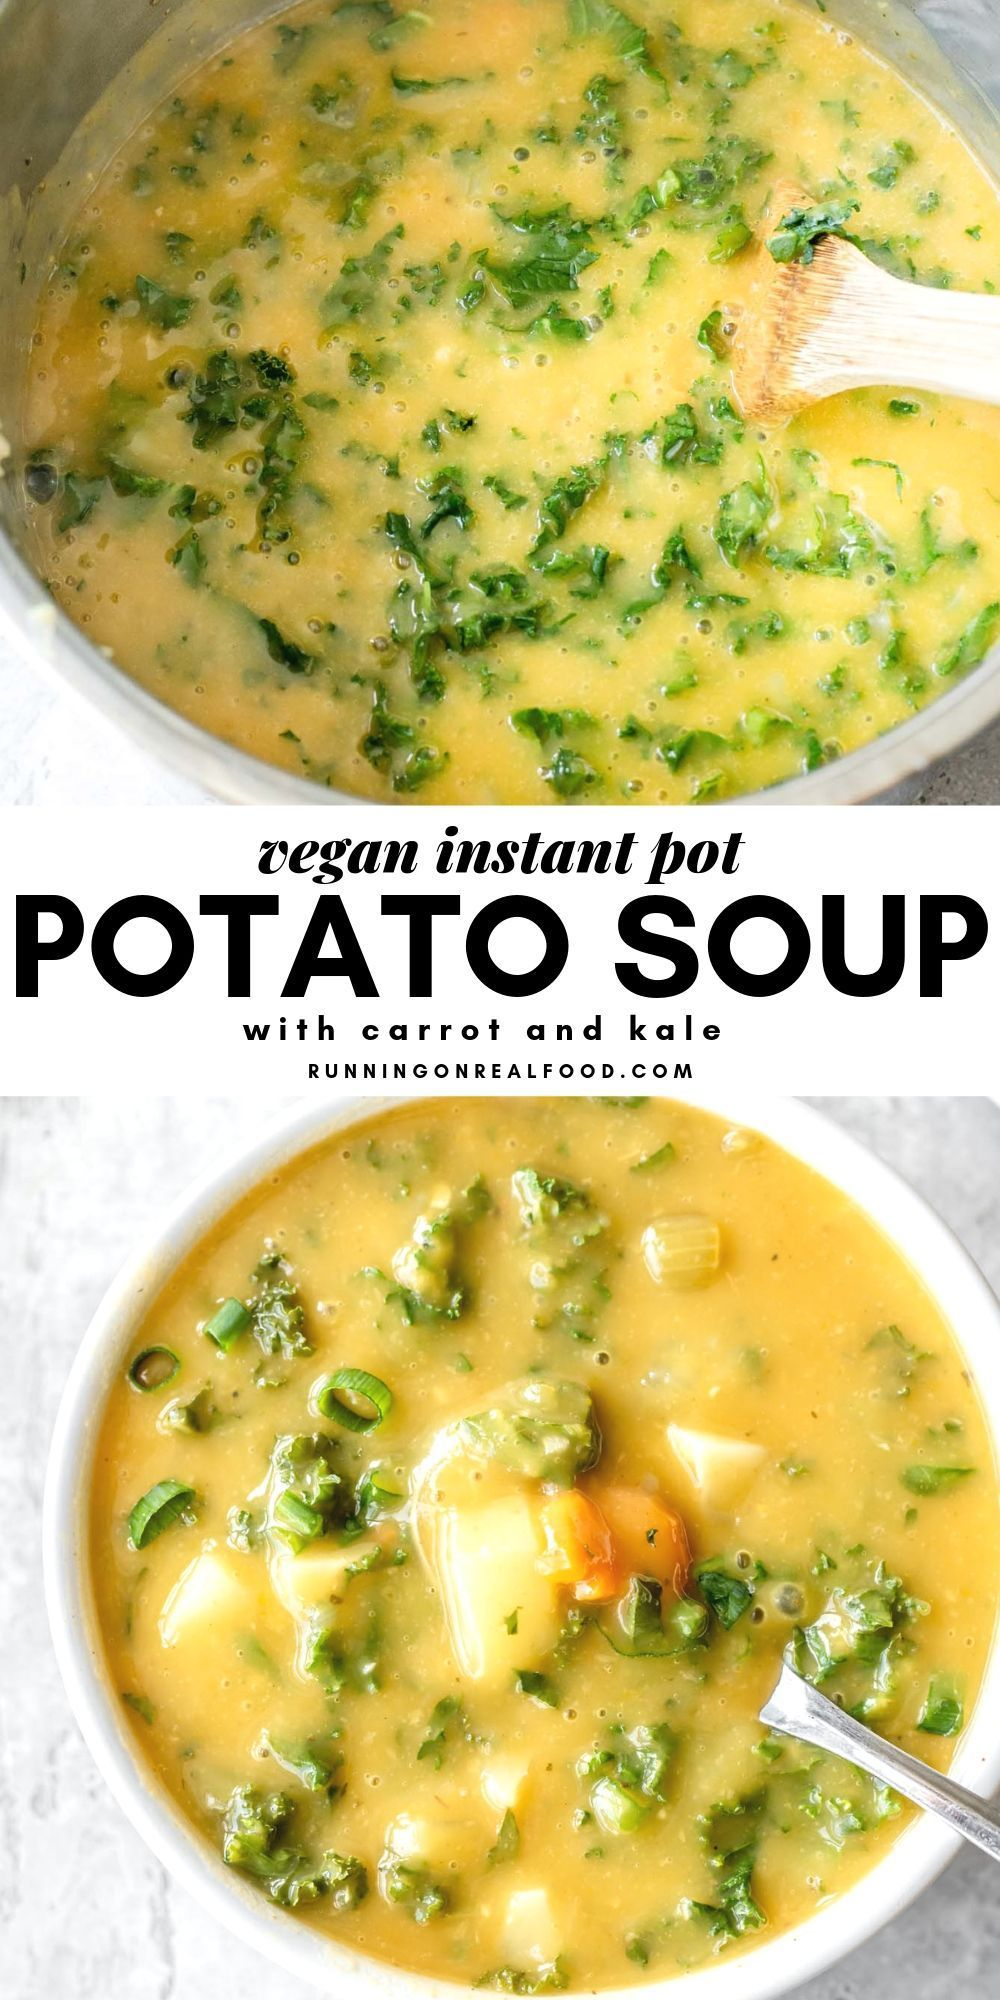 Photo of Vegan Instant Pot Potato Soup